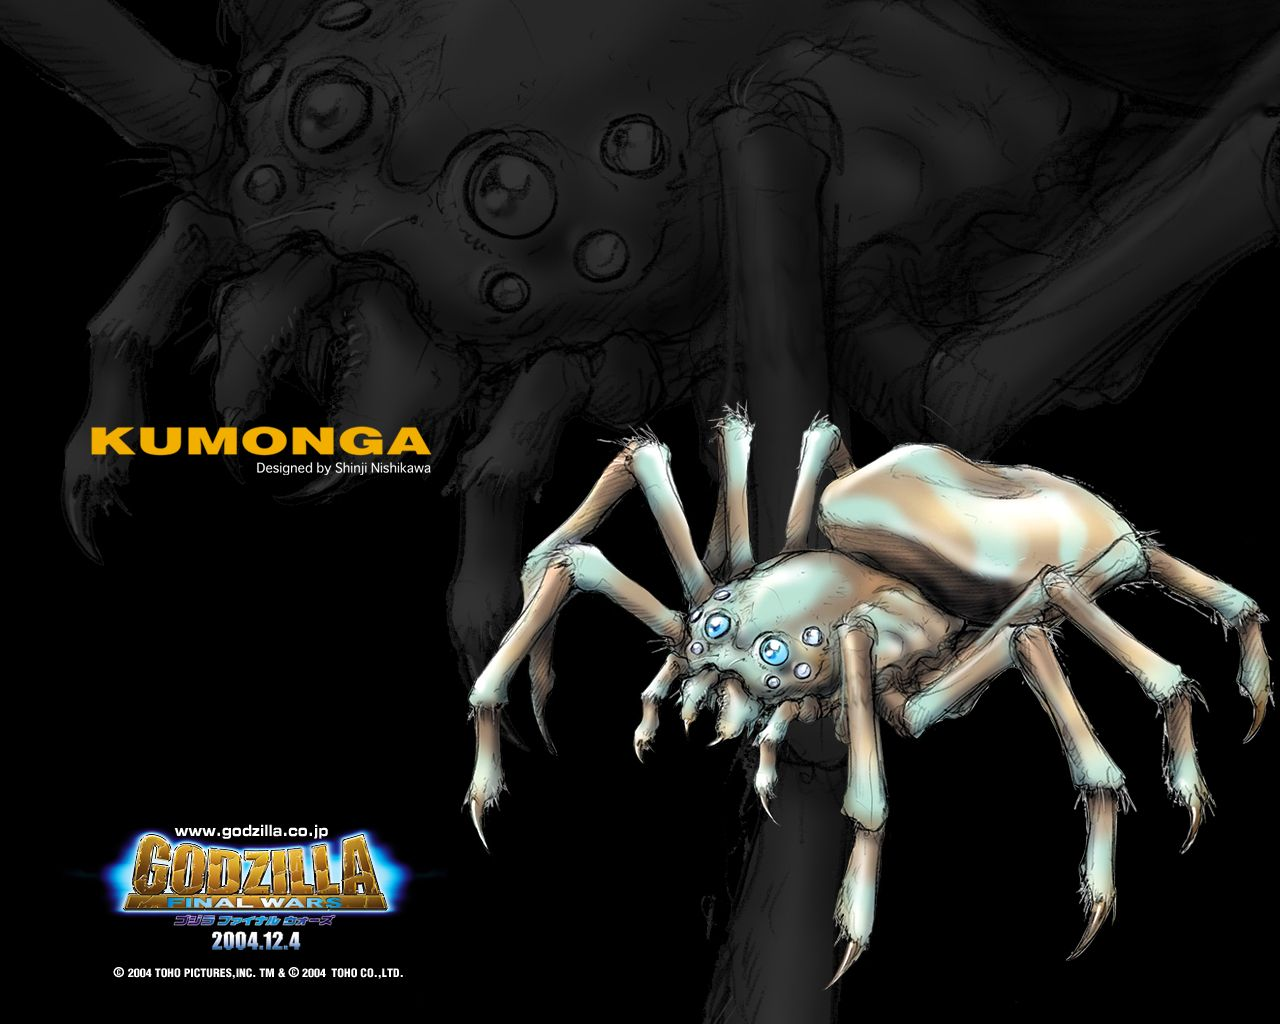 Kumonga from GODZILLA FINAL WARS (2004) GODZILLA and